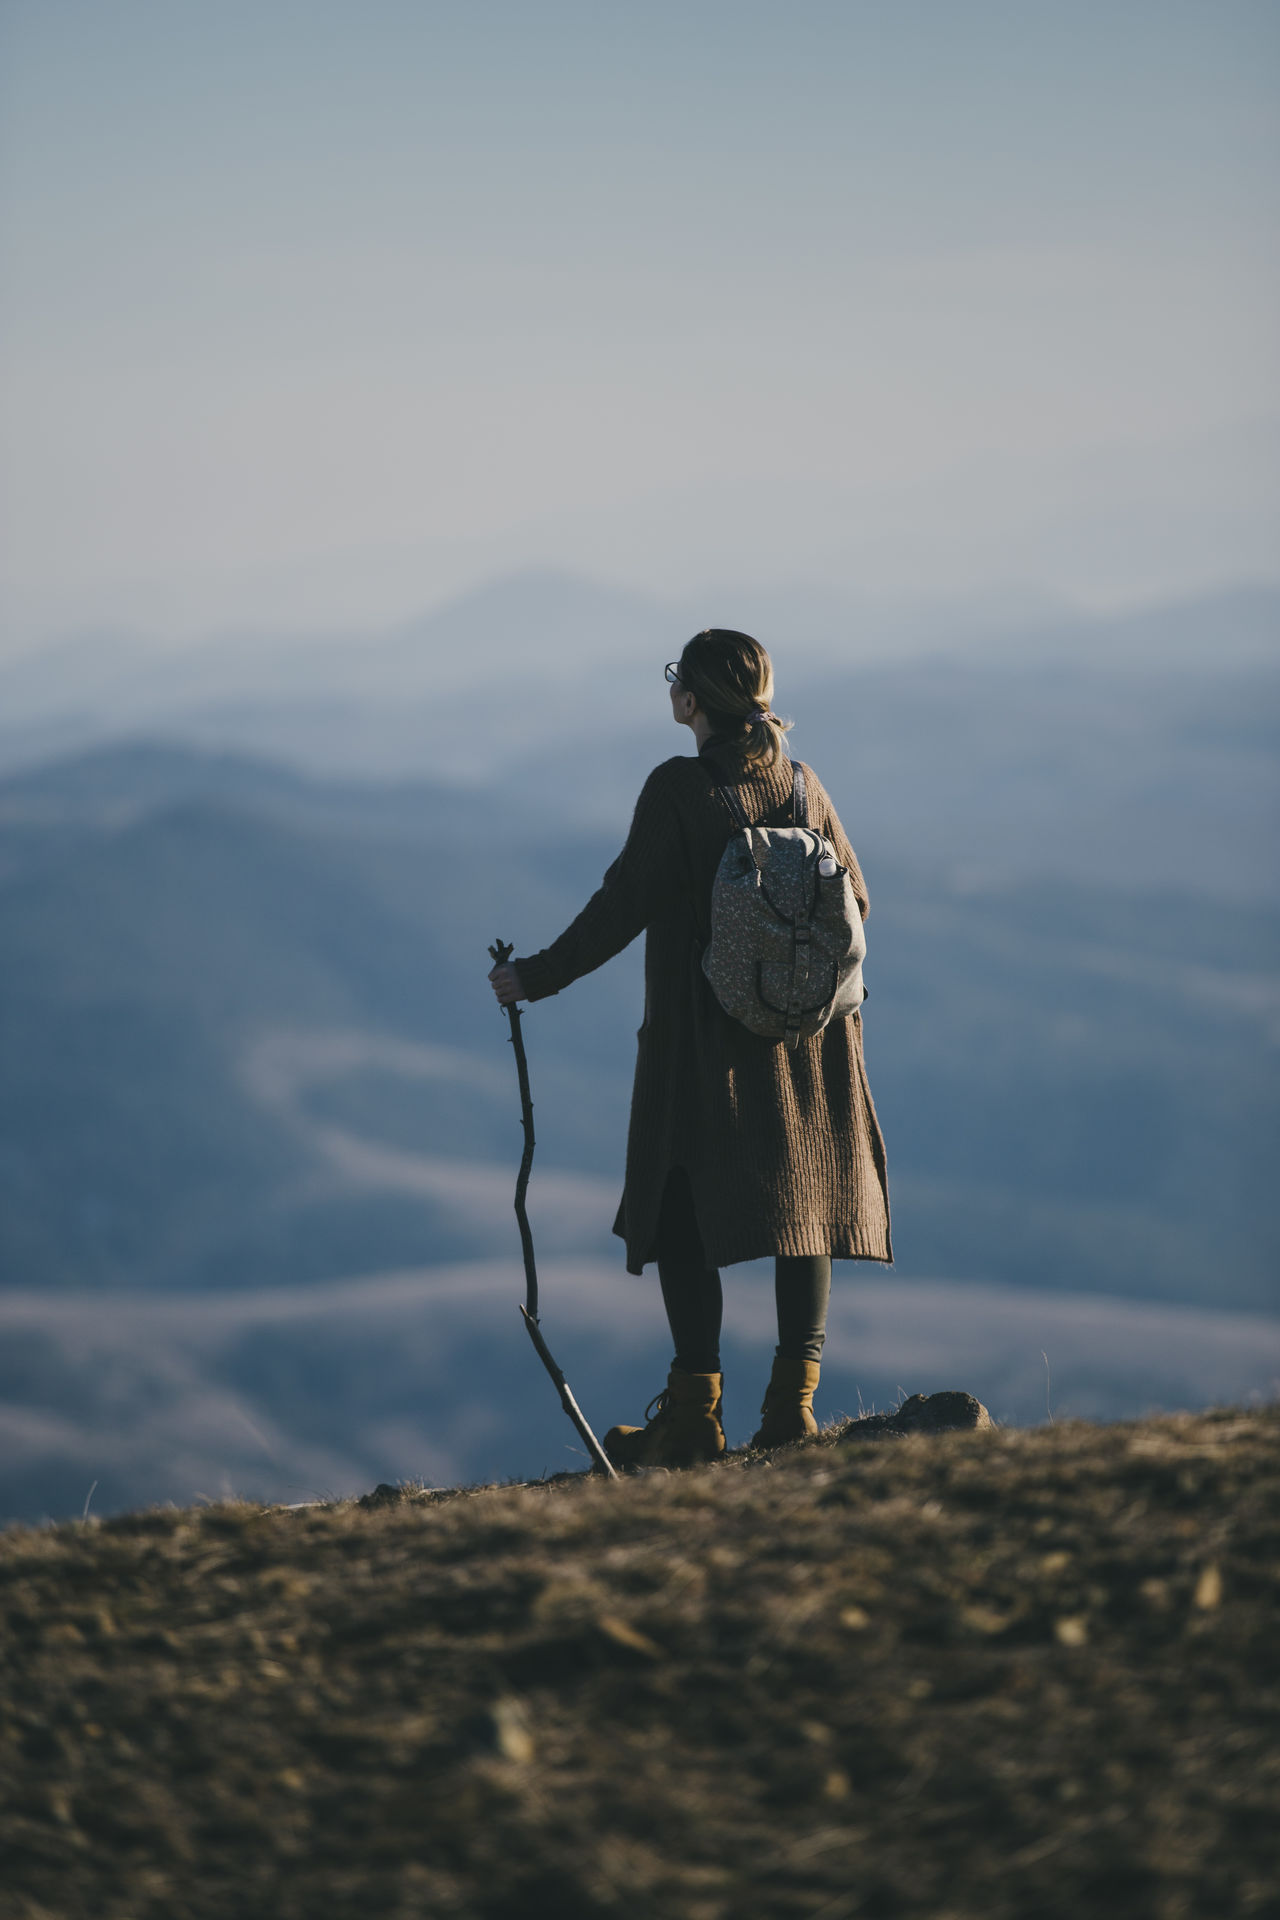 Rear view of woman hiking on mountain